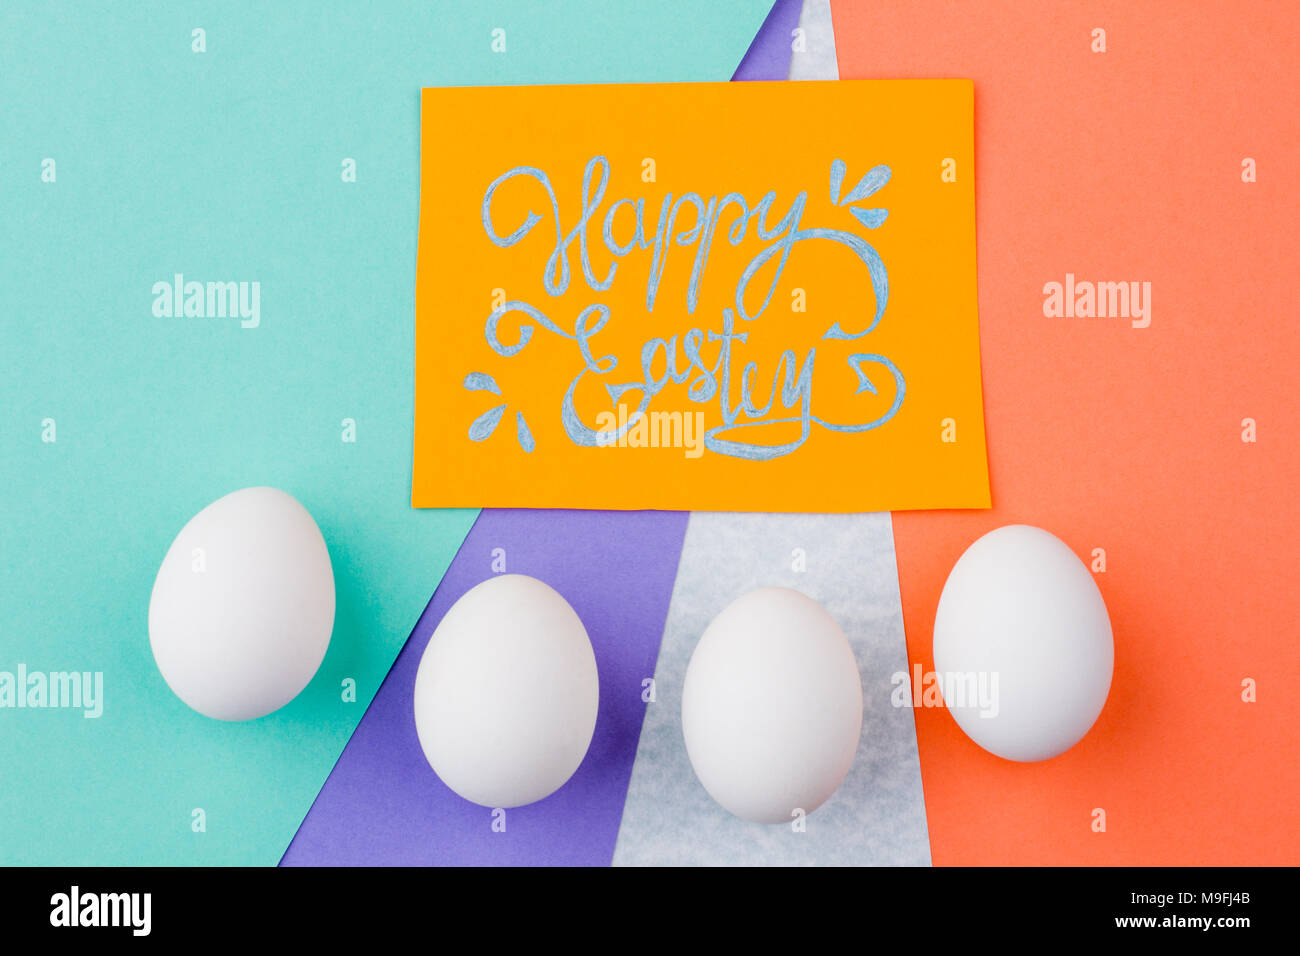 Wishing happy easter stock photos wishing happy easter stock happy easter background with eggs yellow easter greeting card and row of white eggs on kristyandbryce Images